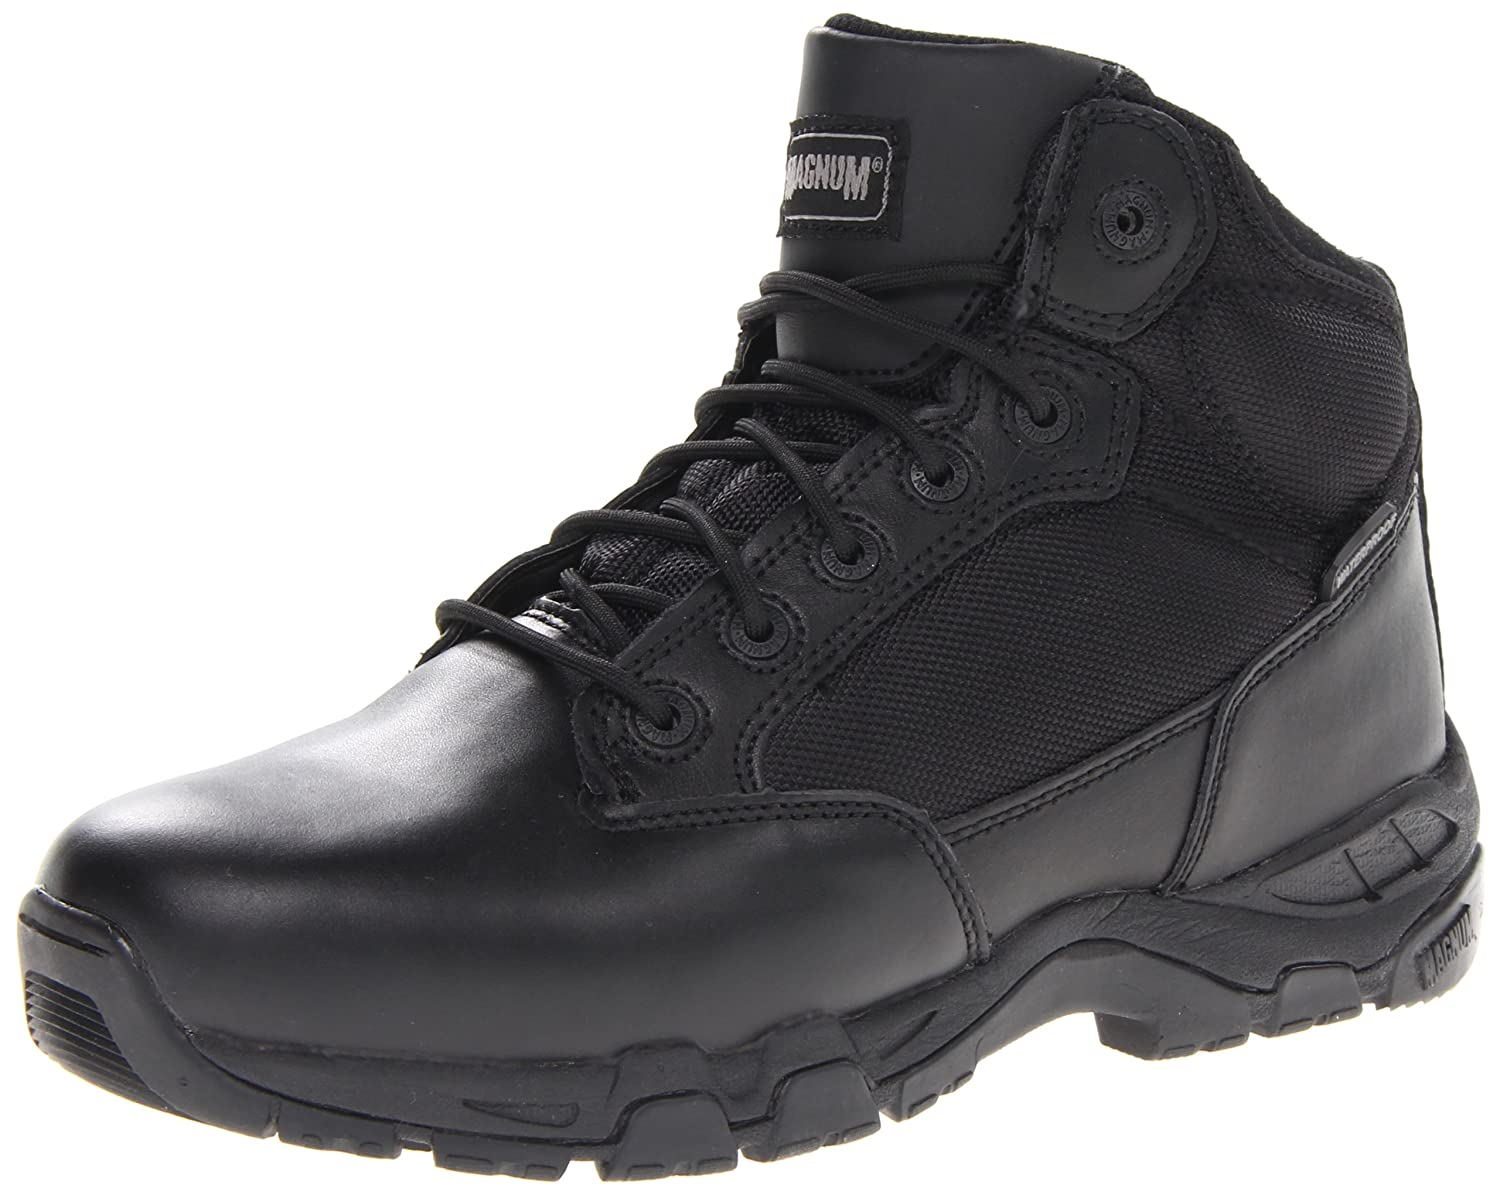 Magnum Men's Viper Pro 5 Waterproof Tactical Boot